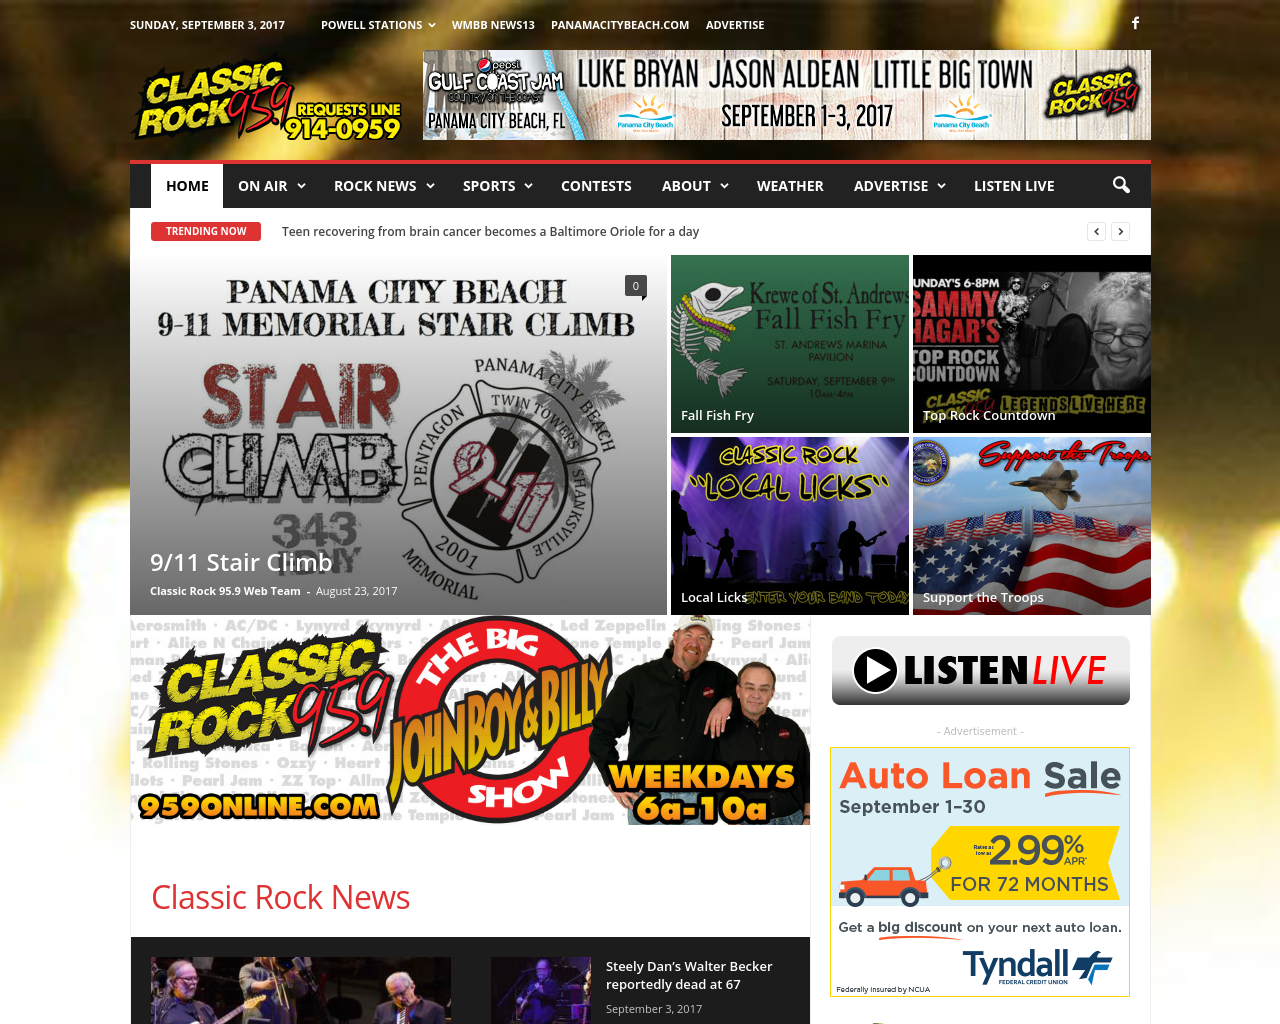 CLASSIC-ROCK-95.9-Advertising-Reviews-Pricing